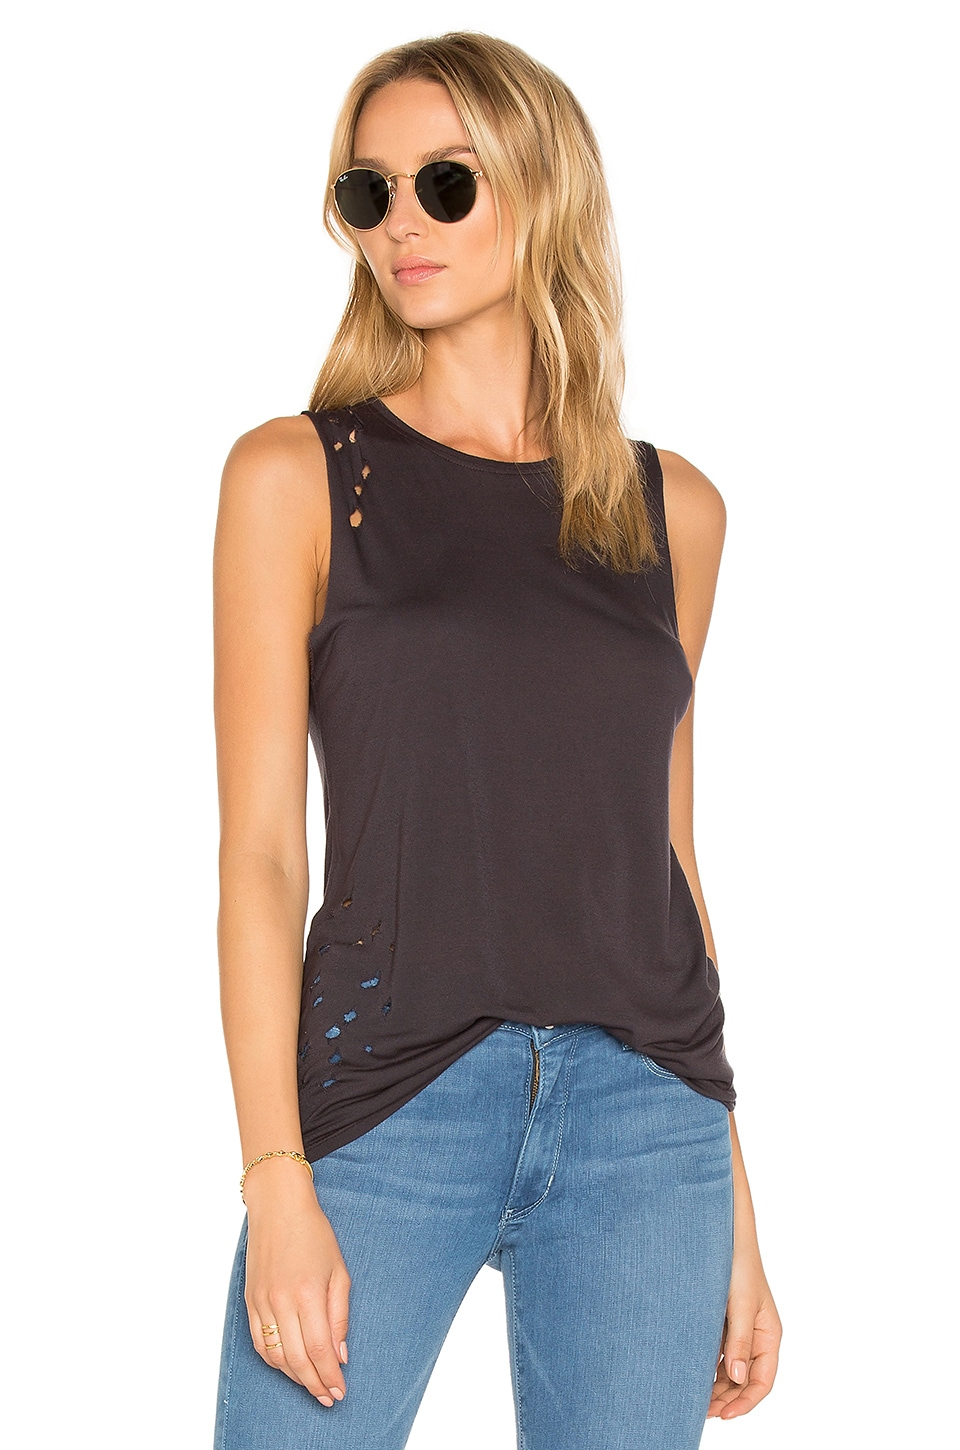 The Brix Distressed Muscle Tank by Weslin + Grant